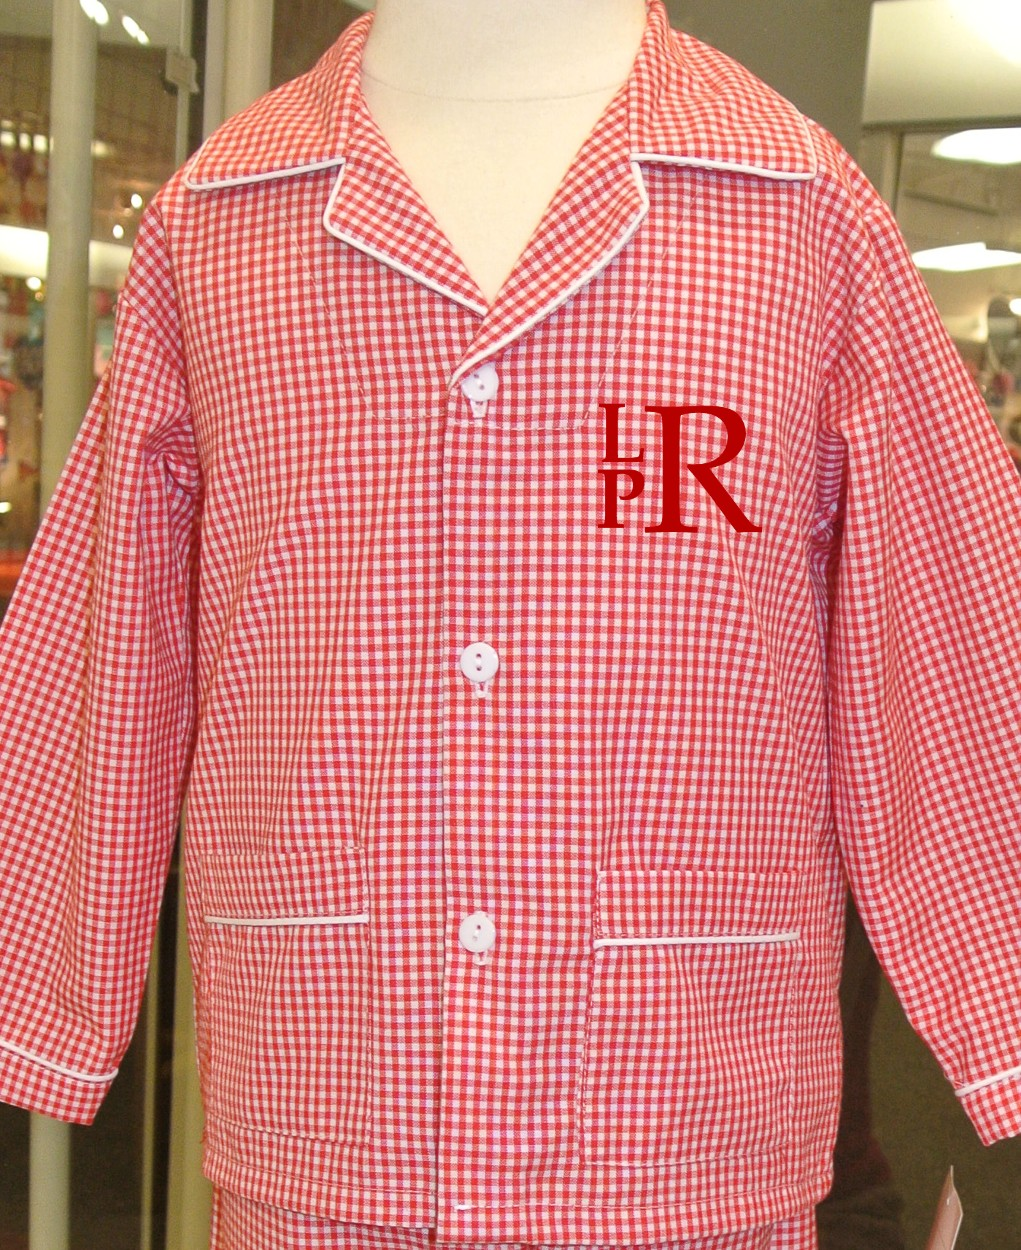 Boy's Monogrammed Red Gingham Pajamas with Pockets Perfect for ...